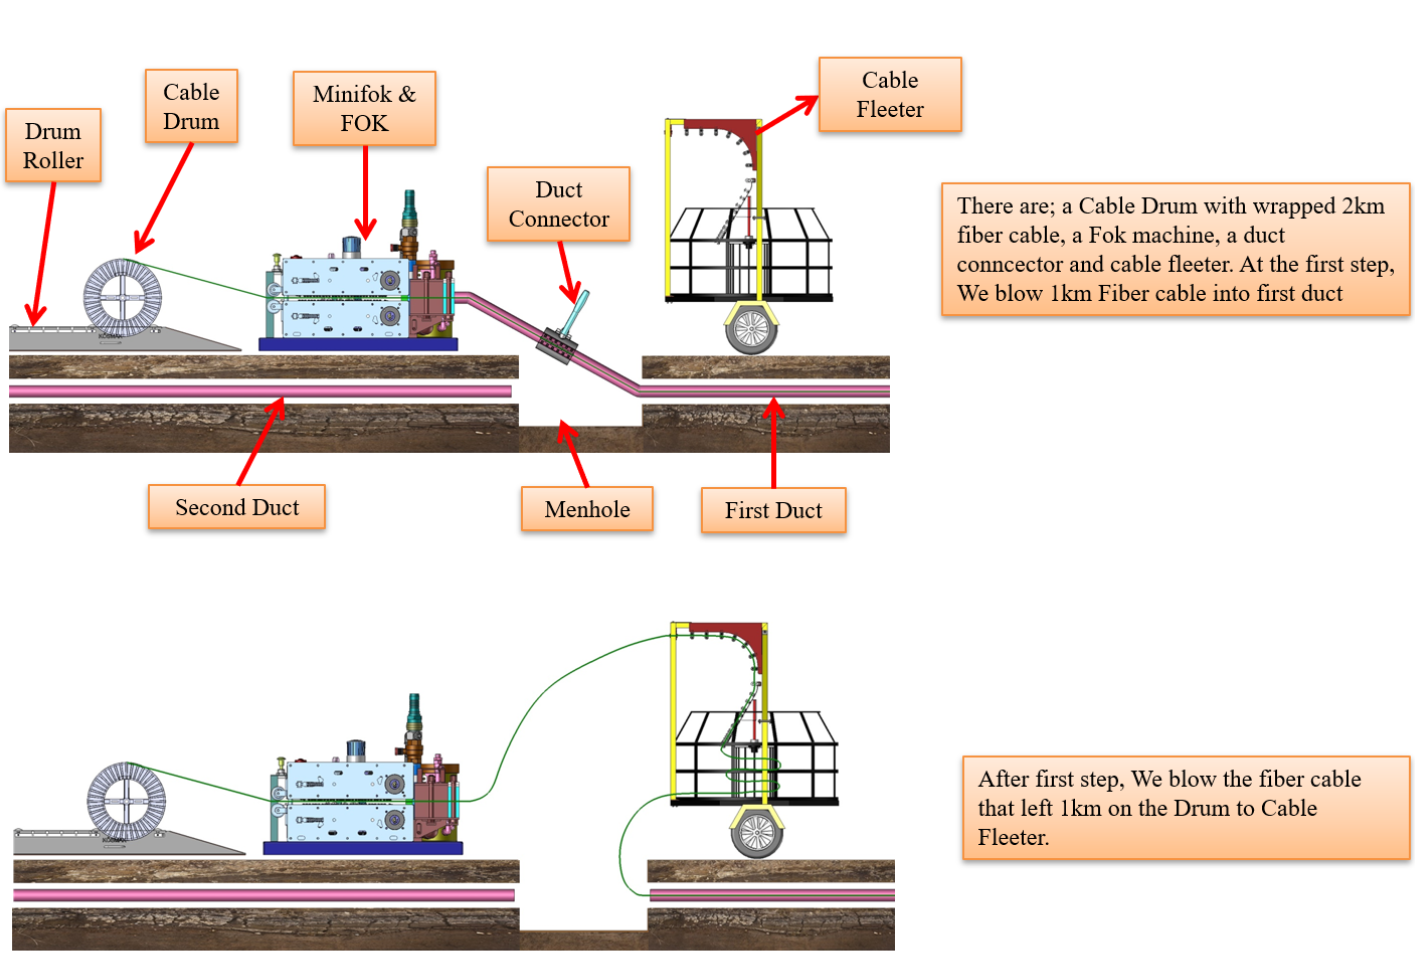 how to use cable fleeter machine